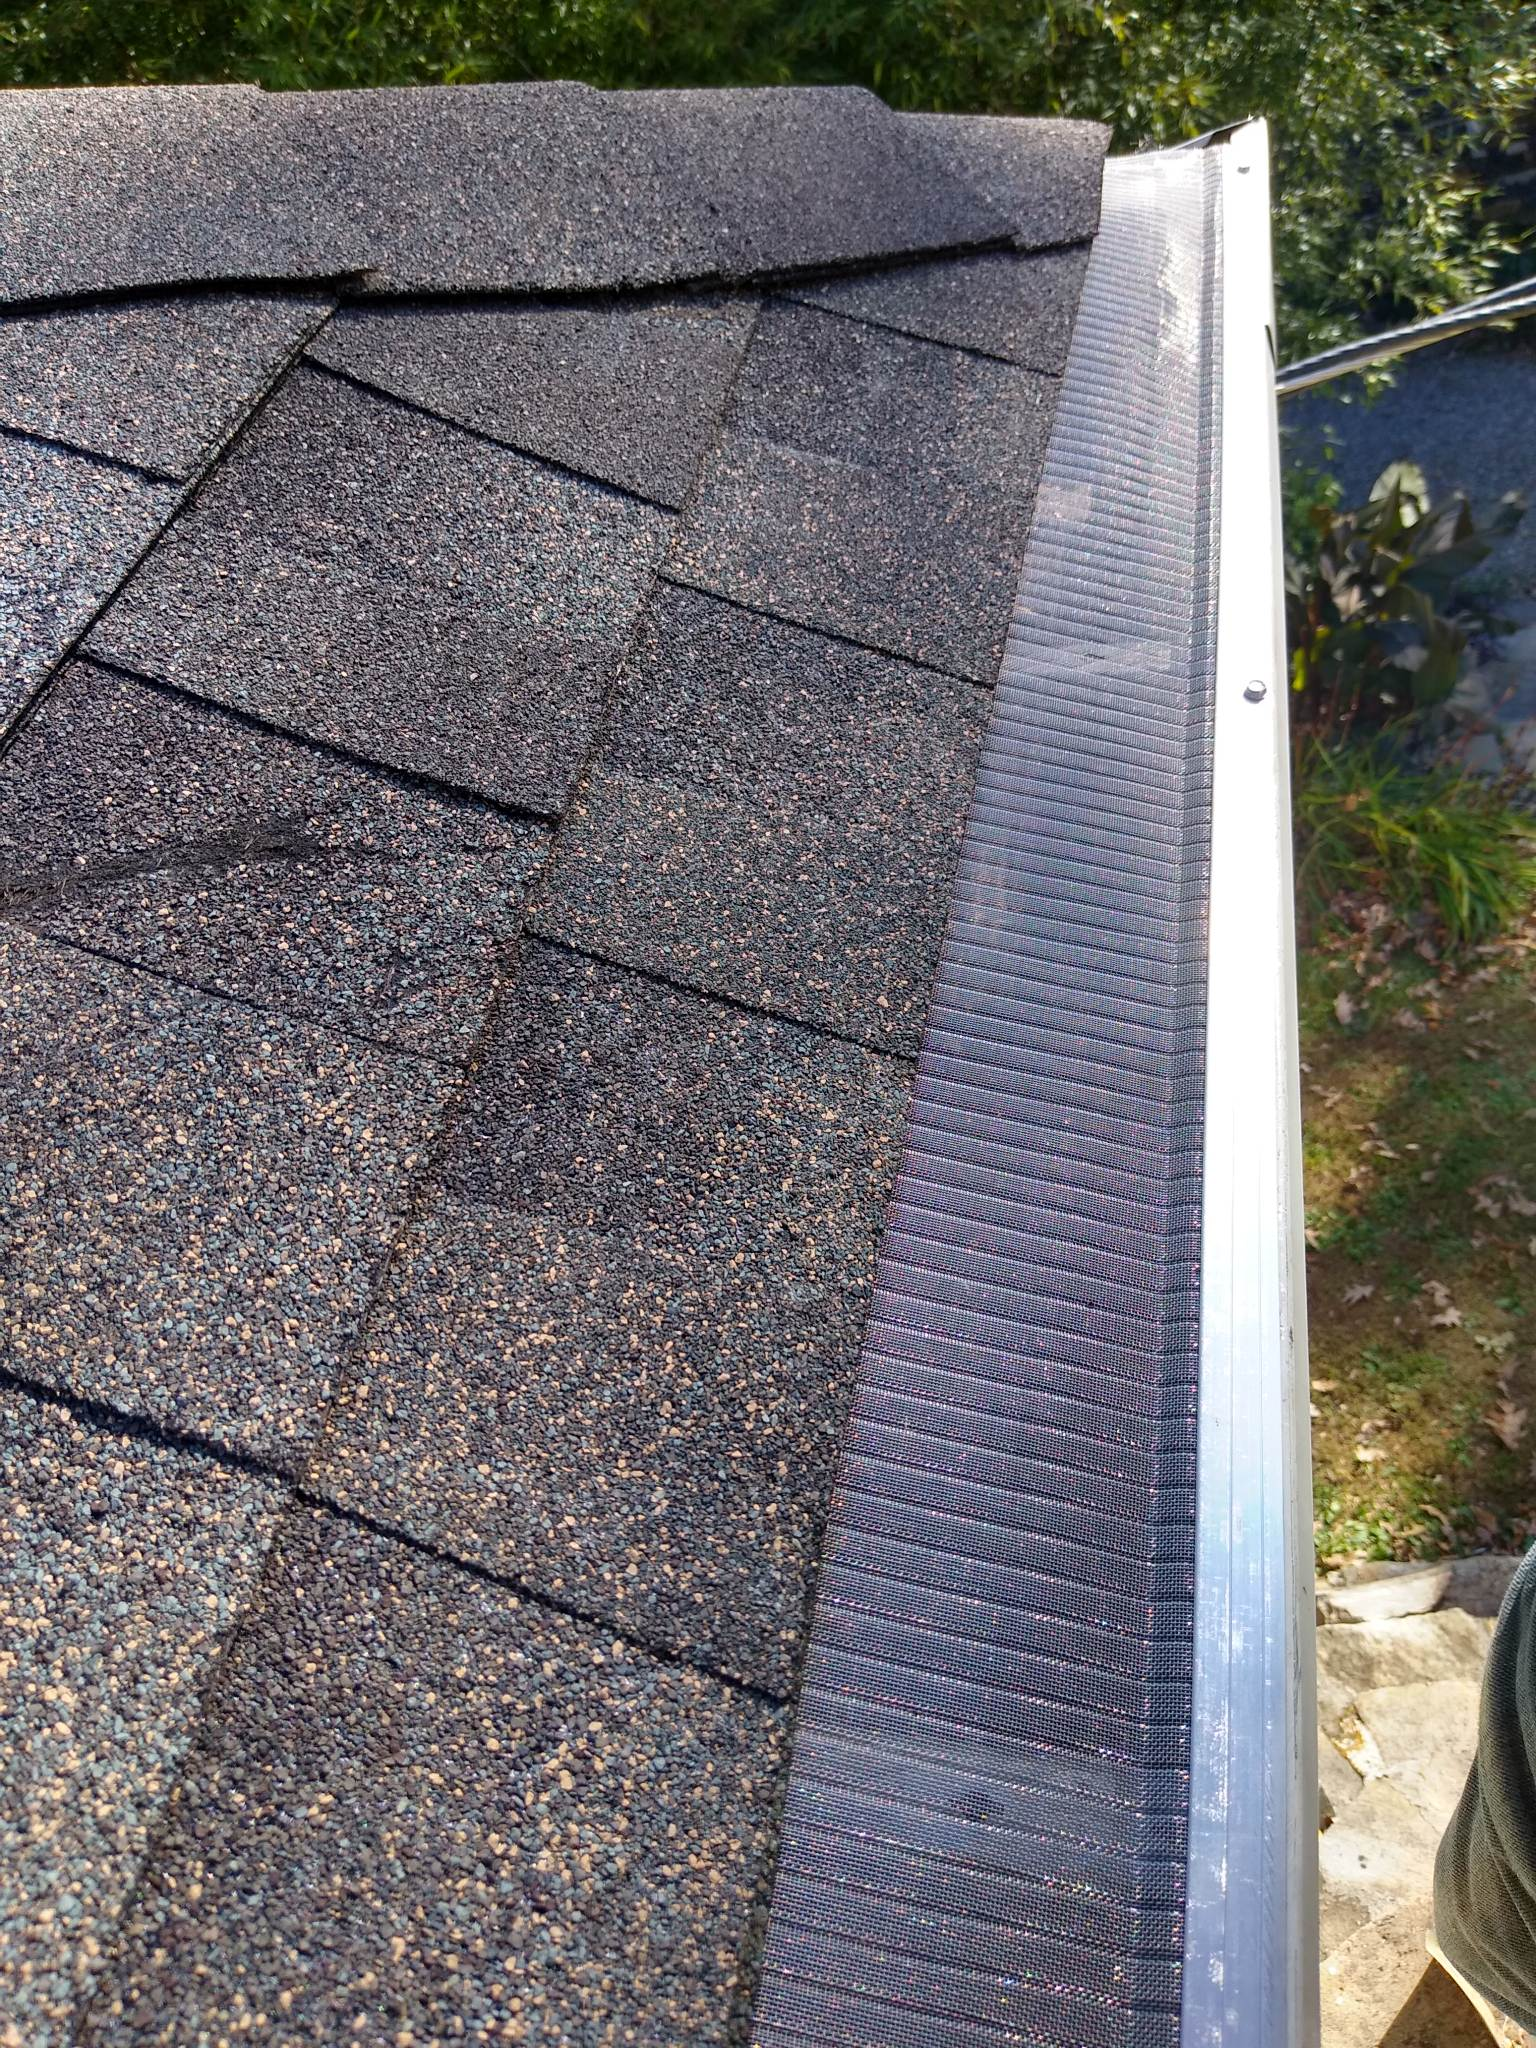 This is a picture of gray shingles and stainless steel gutter guards at the edge of a roof